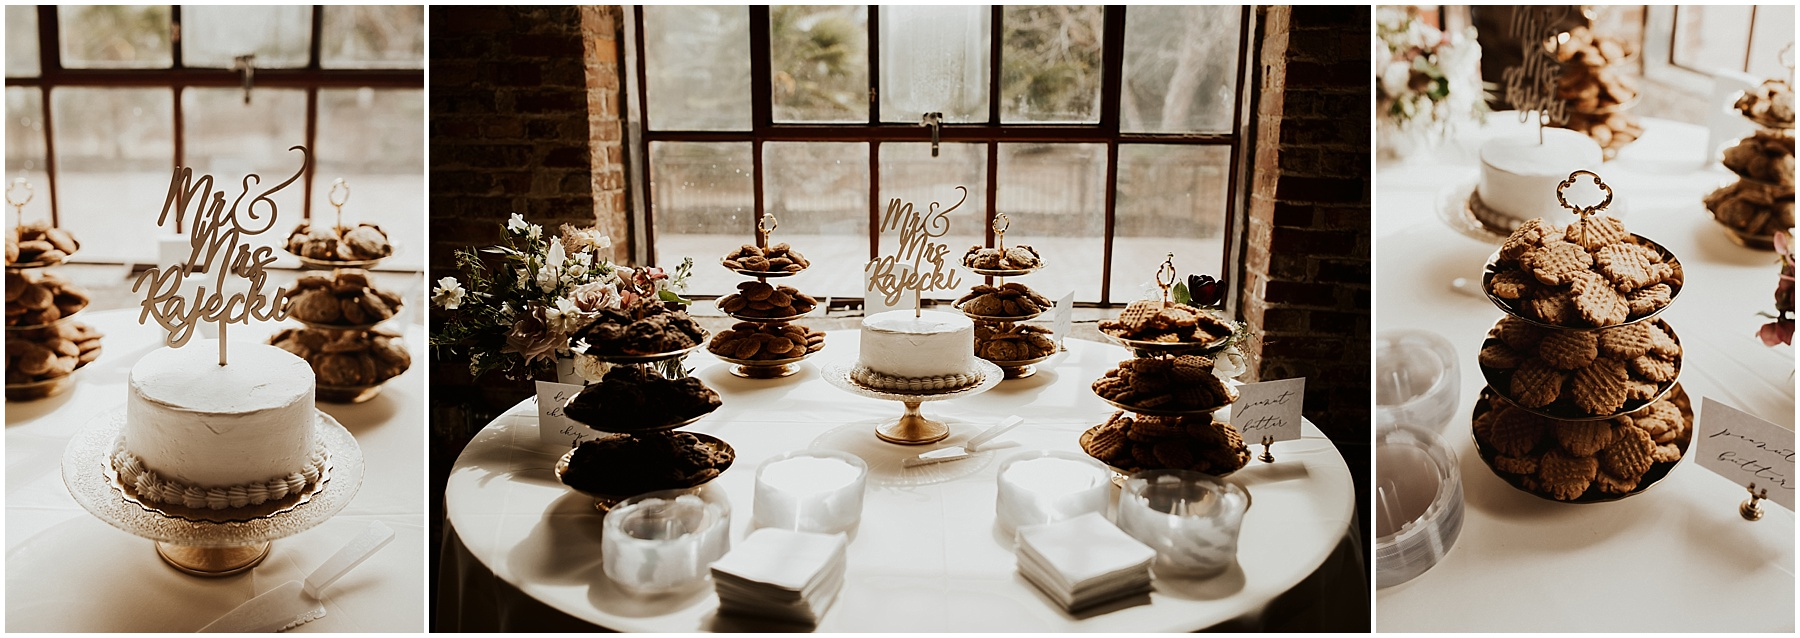 The_Mill_At_Yellow_River_Wedding046.JPG